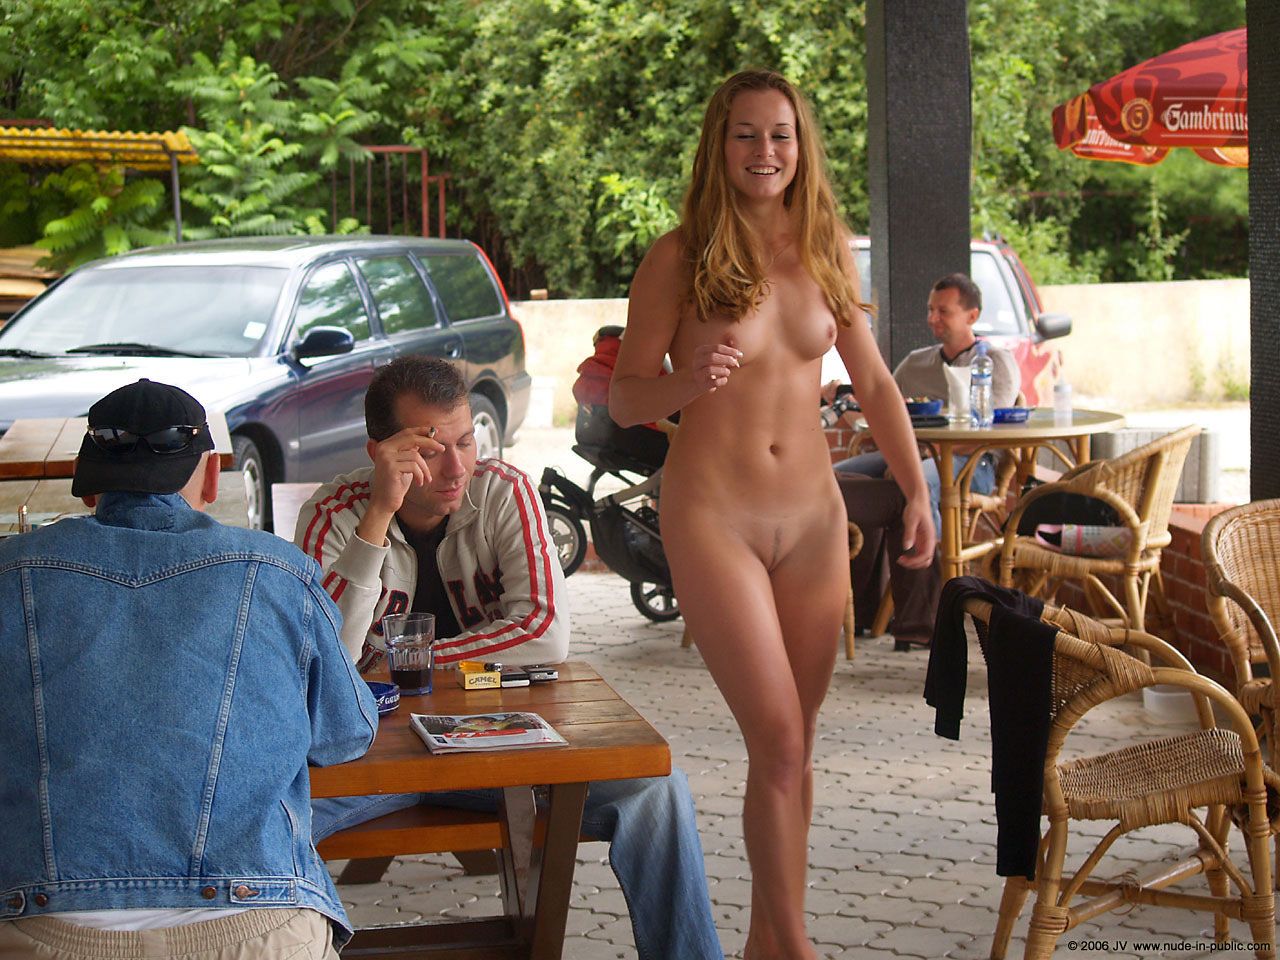 naked-girls-in-public-mix-vol5-97